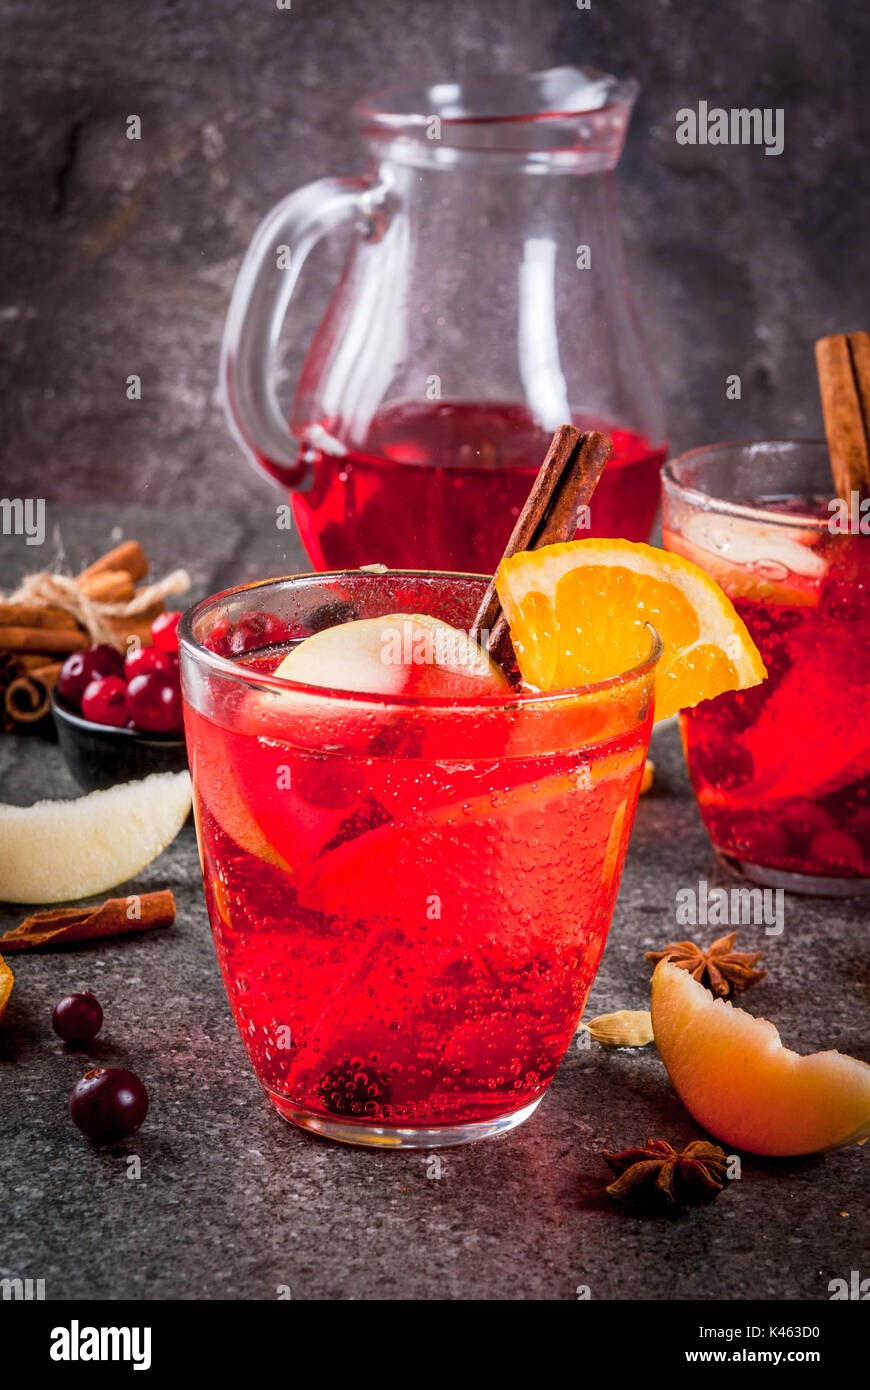 Cranberry Christmas Punch.Fall And Winter Cold Drinks Cranberry And Orange Holiday